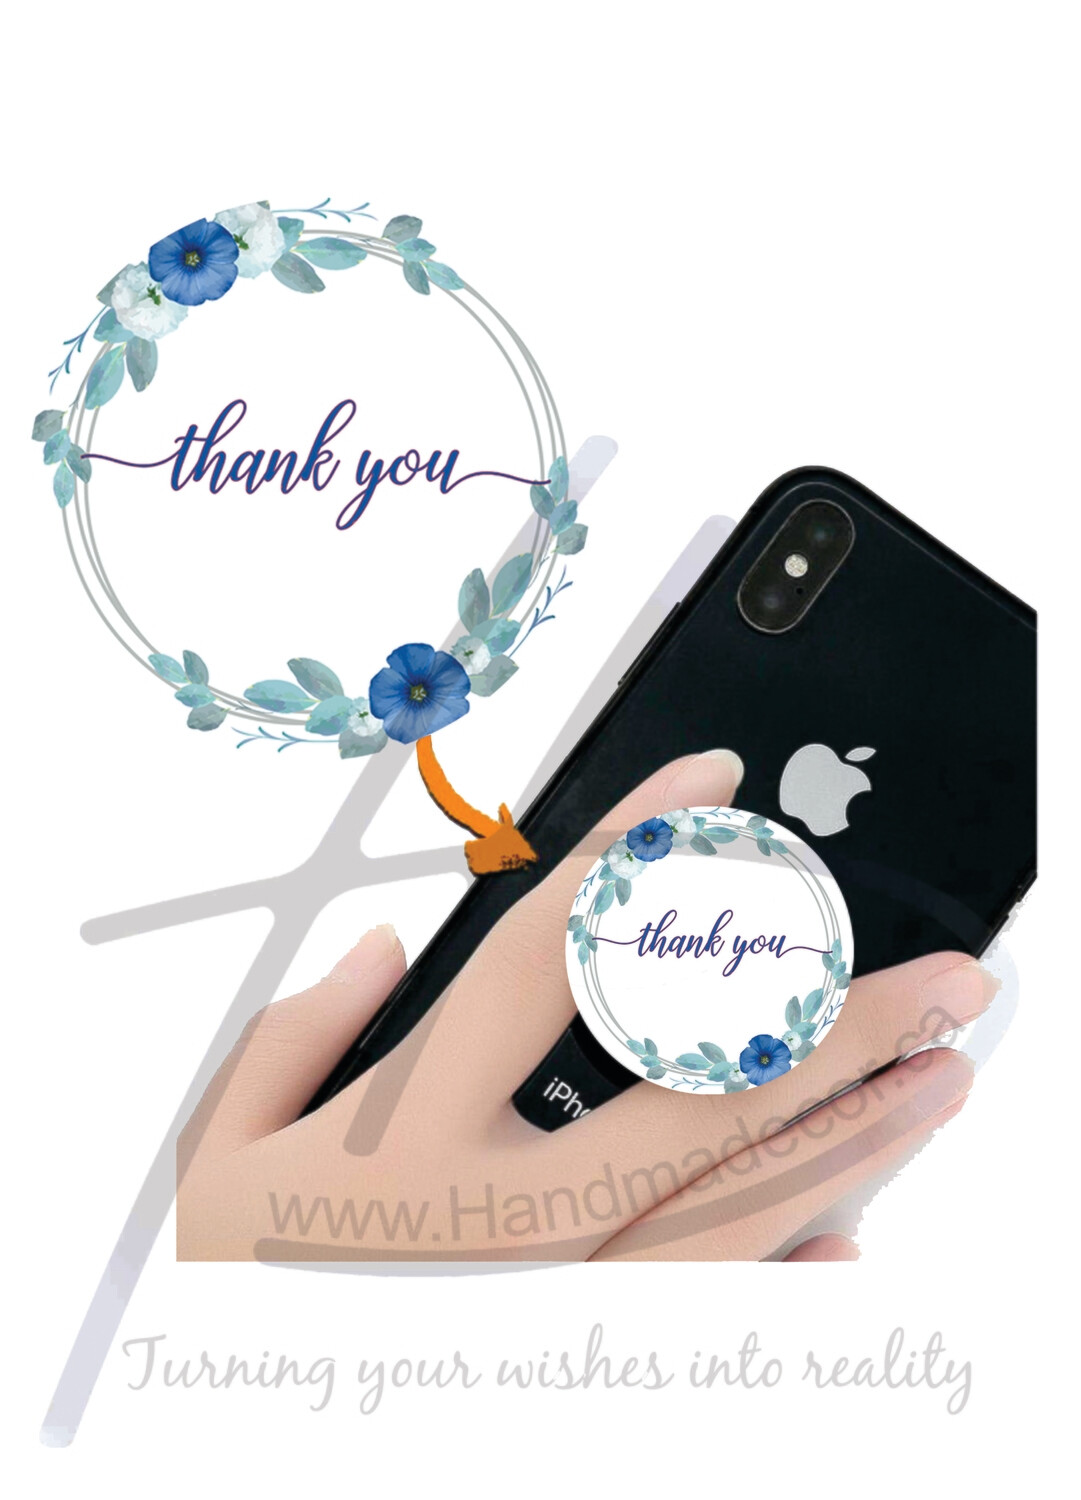 Phone Grips - PopSocket Custom - Personalized PopSocket- customized popsocket - PopSocket custom - wedding gift popsocket-Cirrcle Frames With Elegant Blue Flowers Vector Image